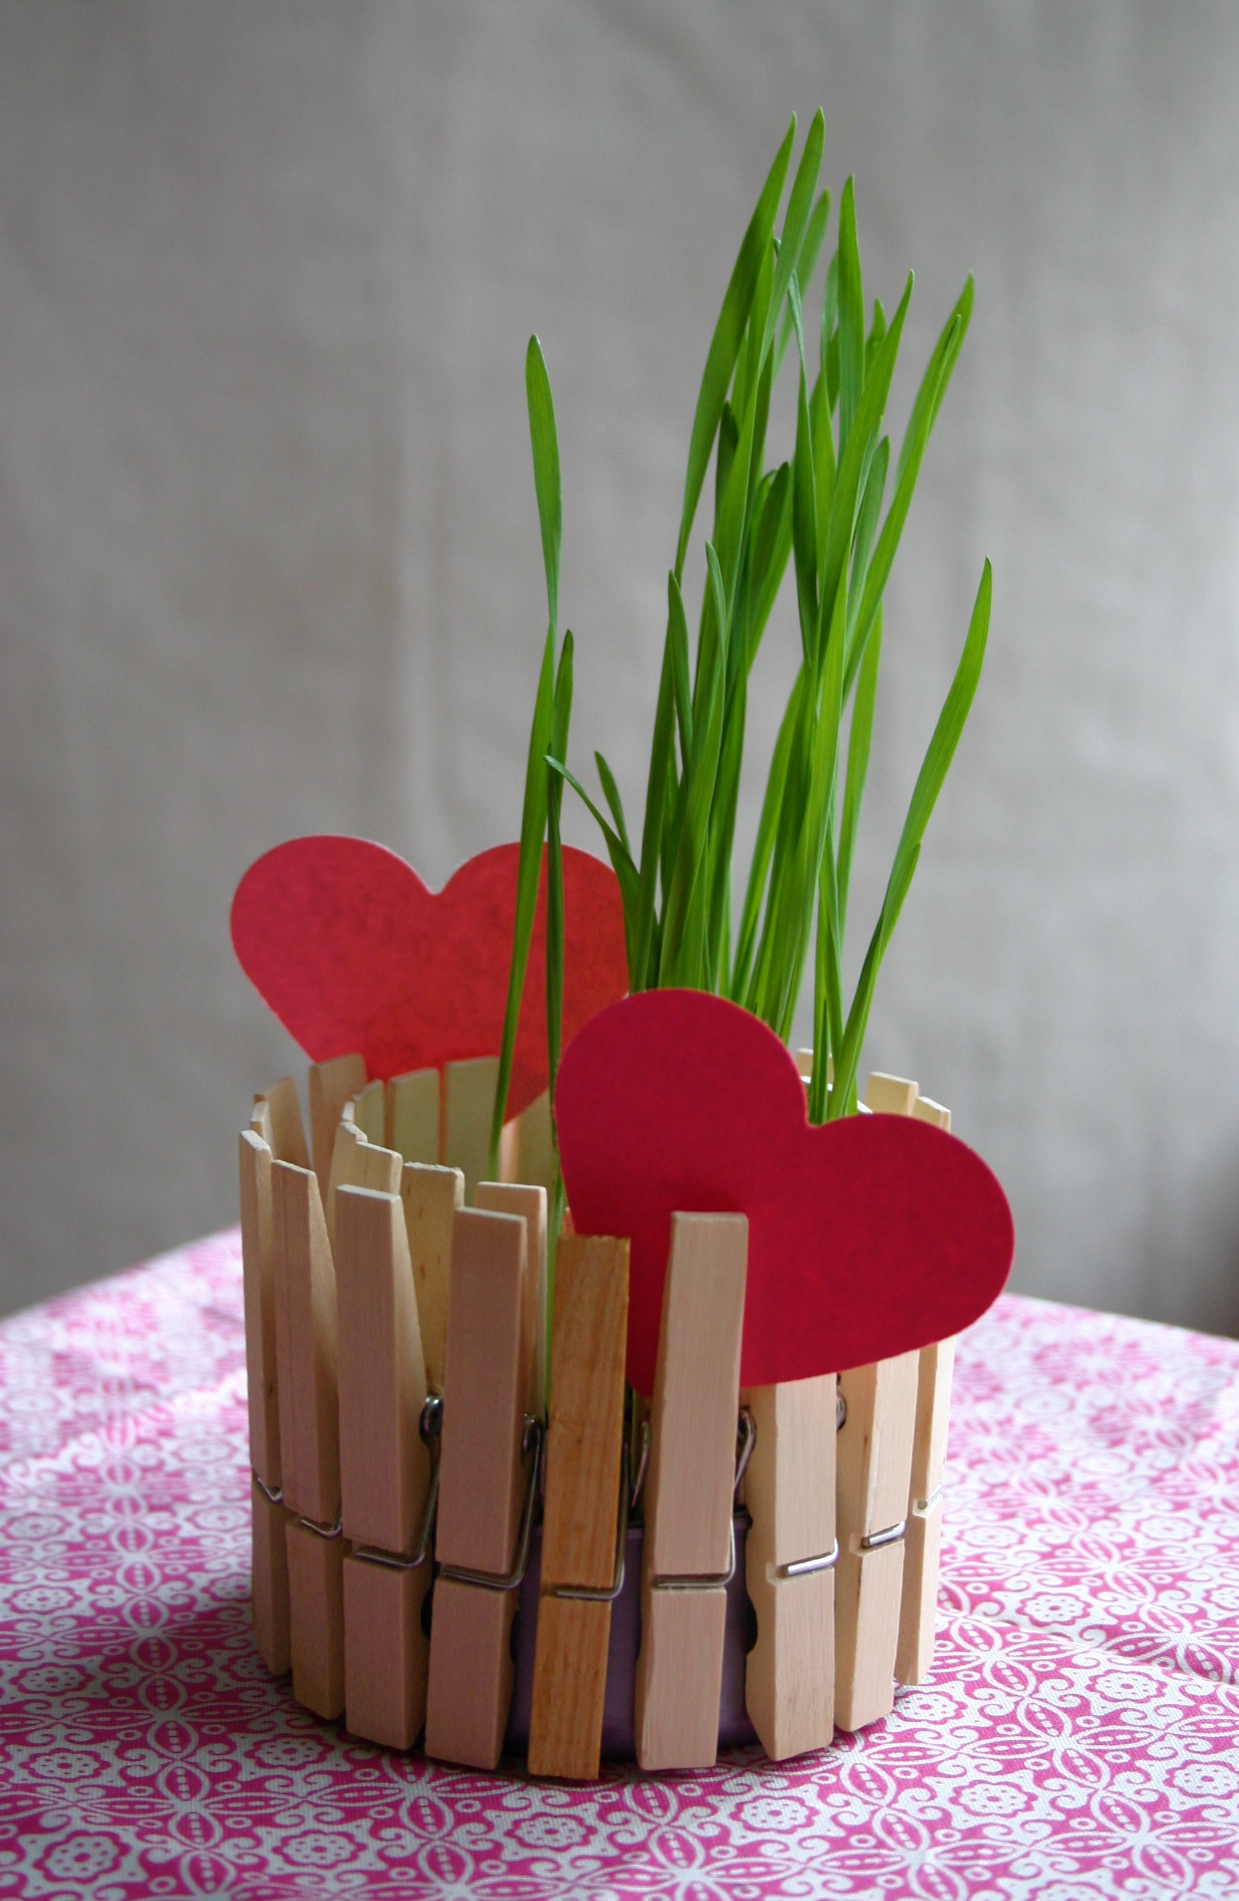 Clothespin Planter from Family Chic